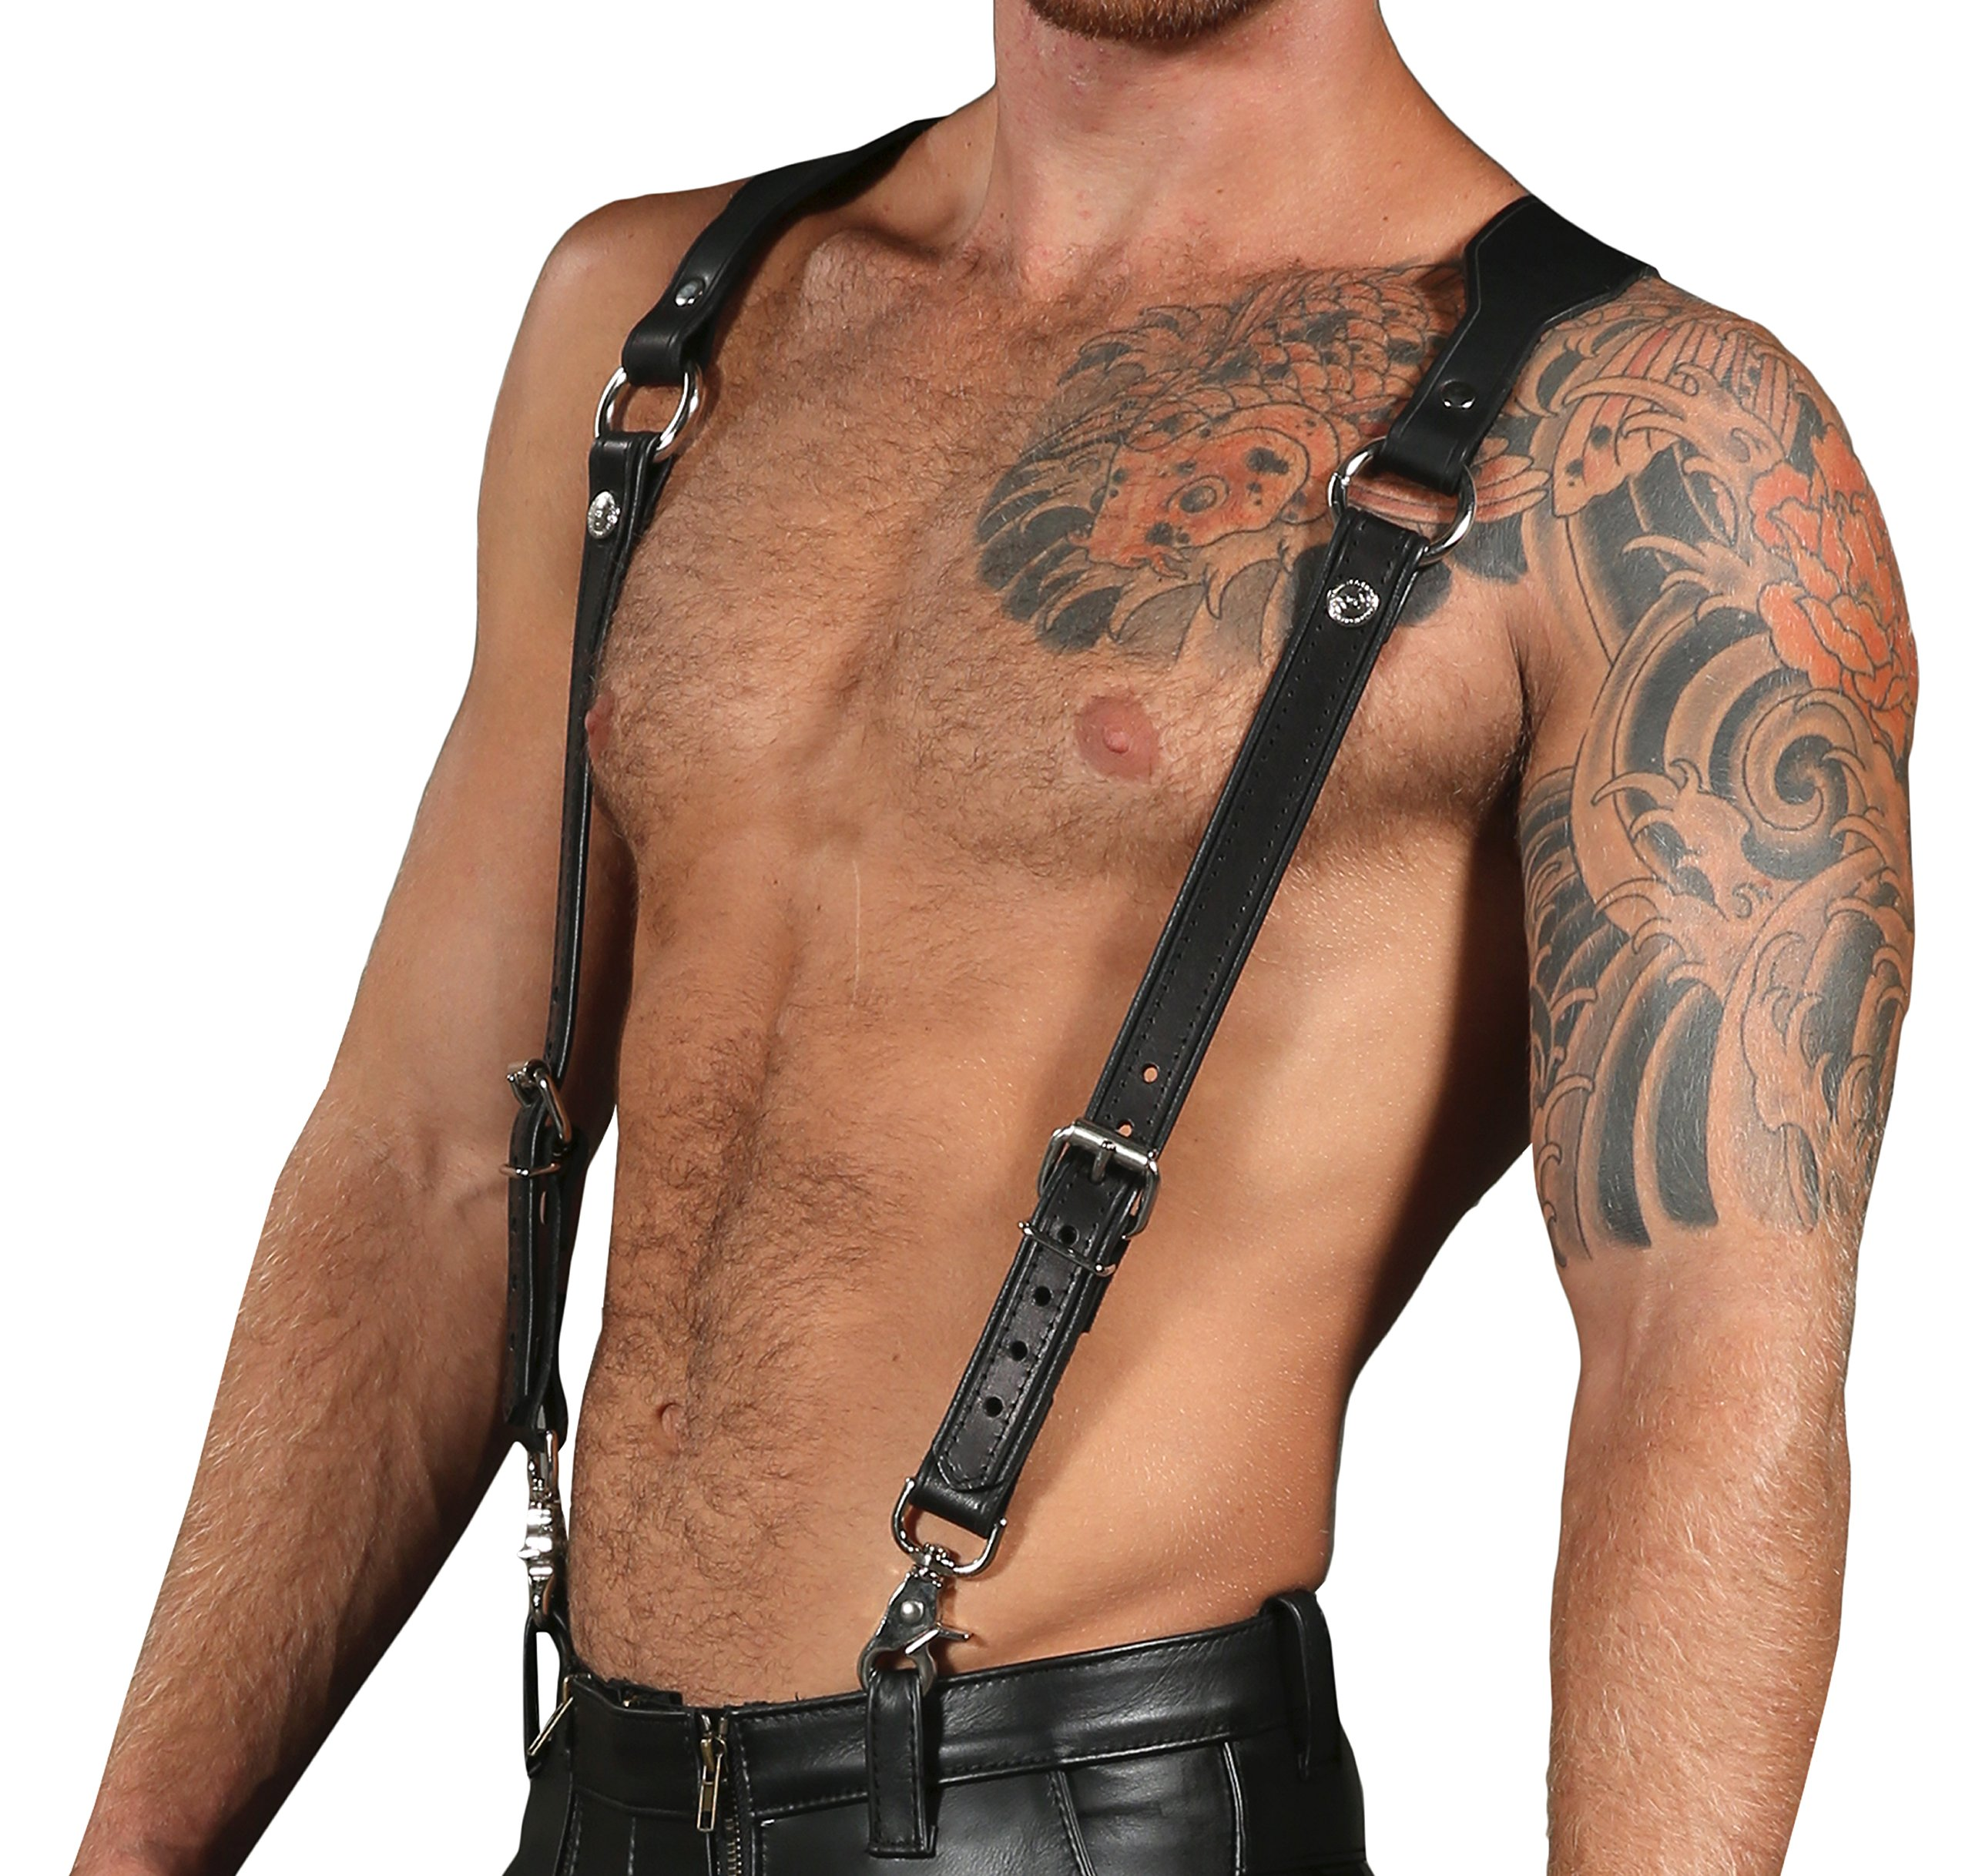 Leather Suspender Harness Combo